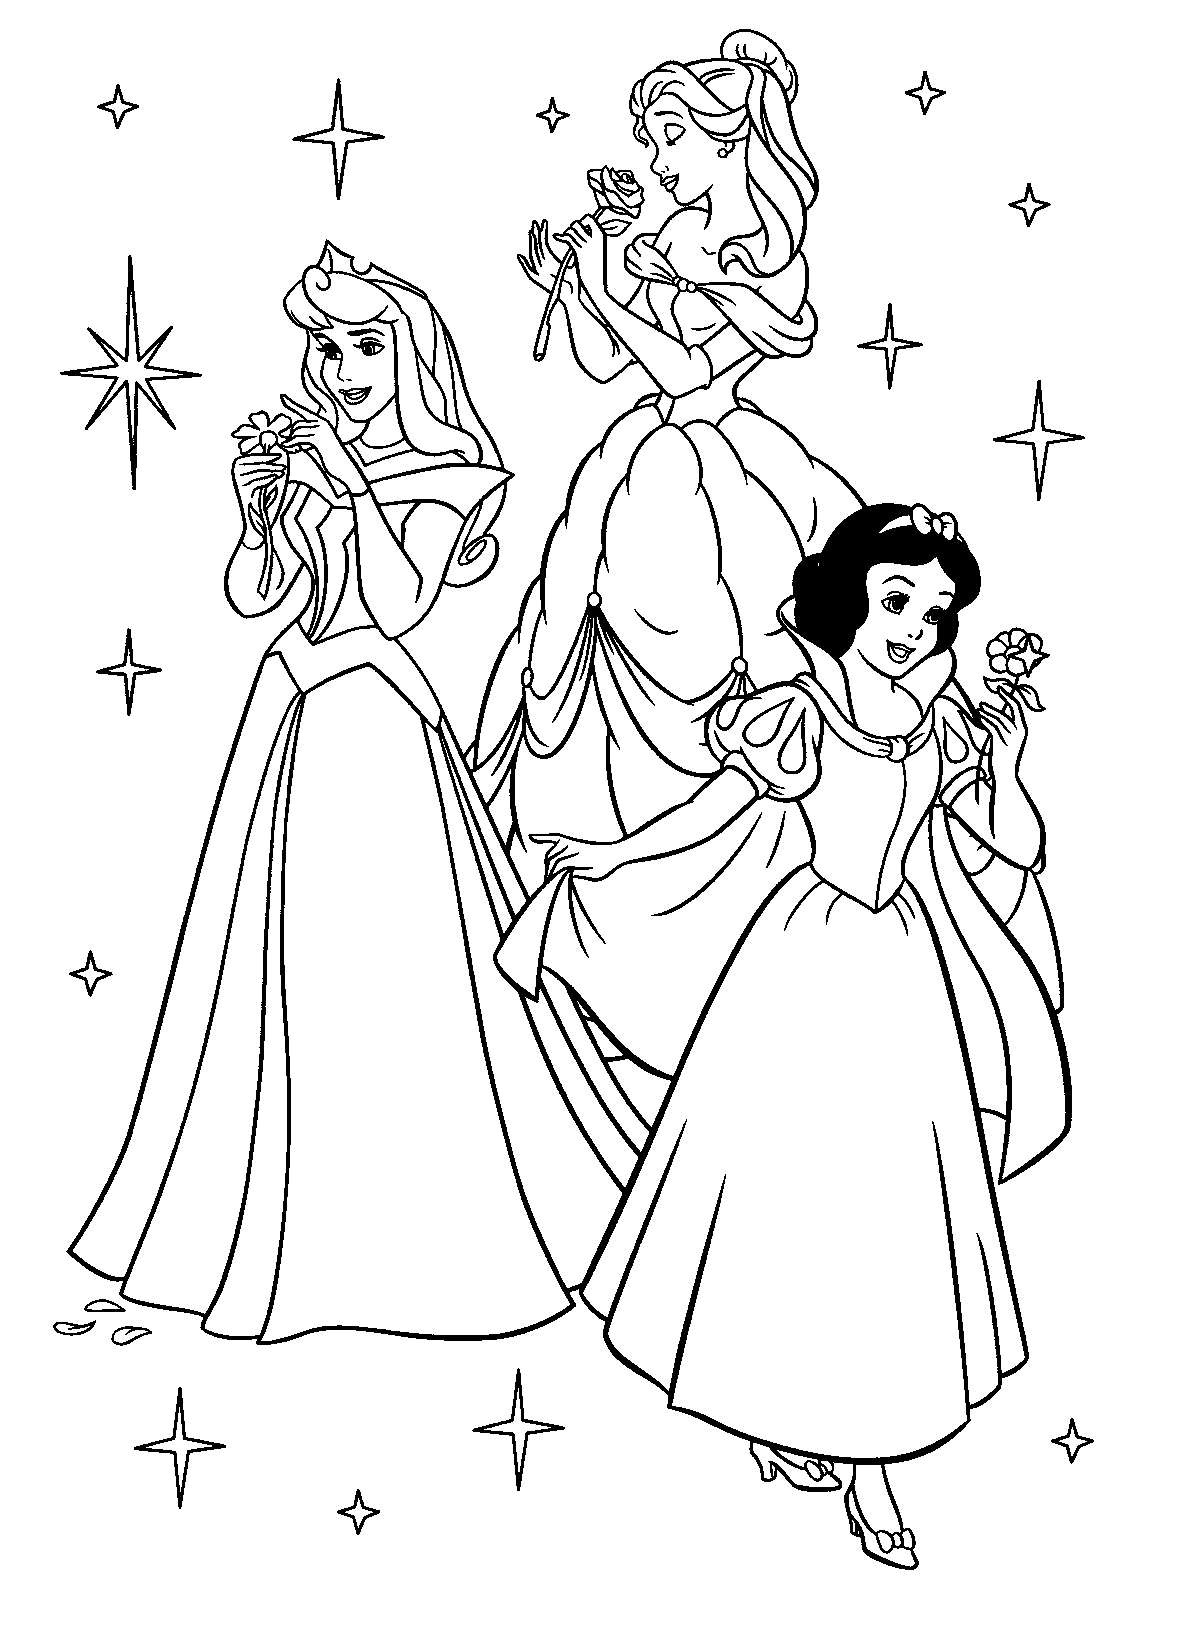 Free Printable Disney Princess Coloring Pages For Kids Coloring Sheets Of Princesses